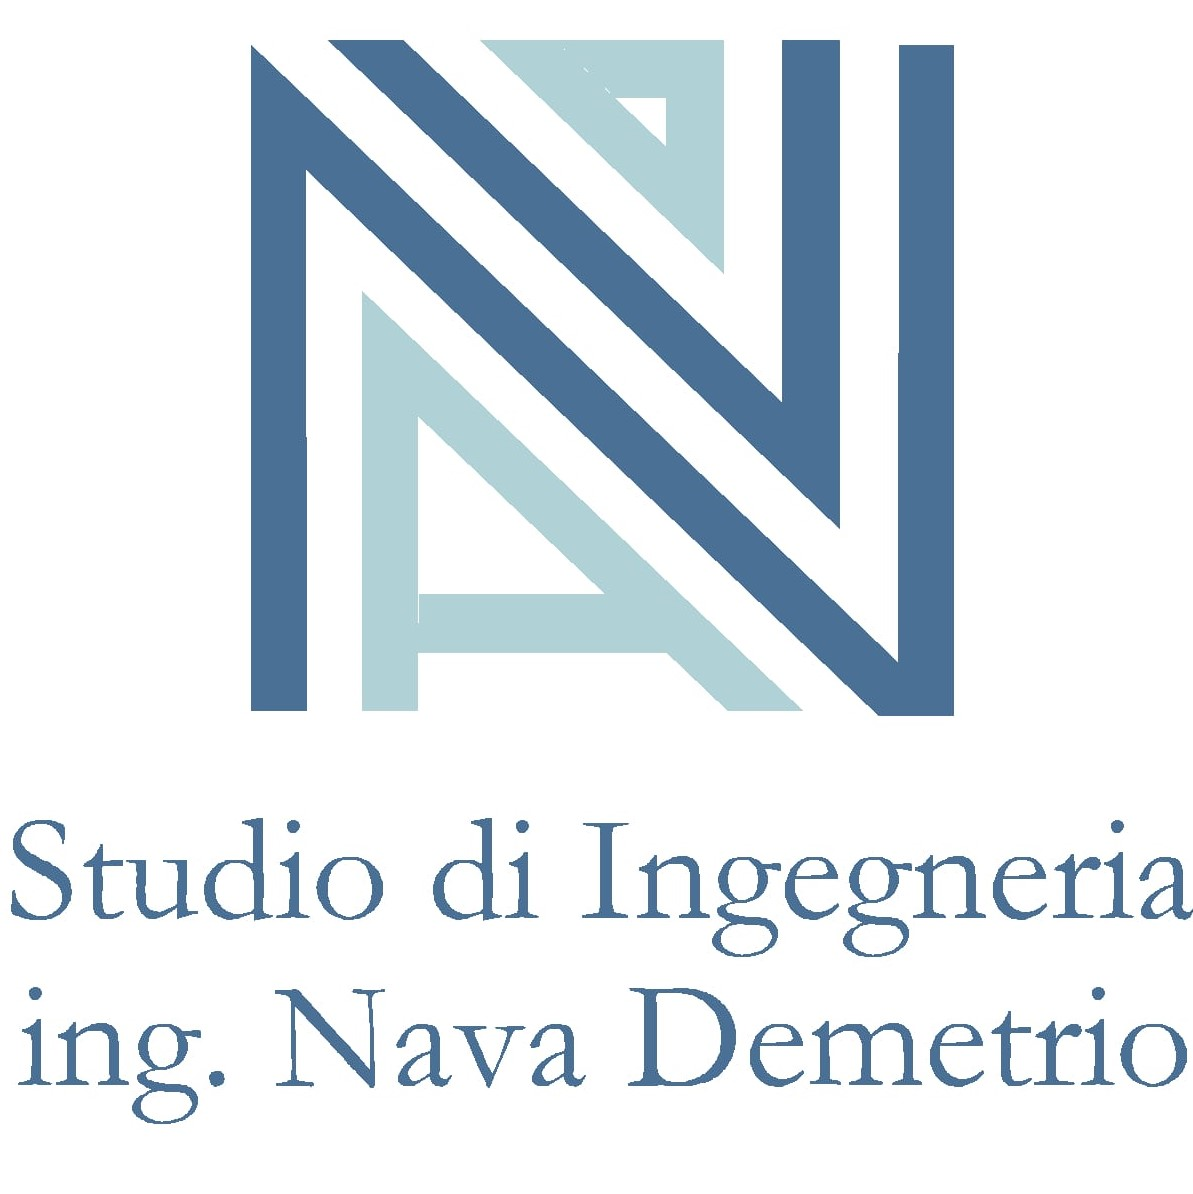 www.studionavademetrio.it